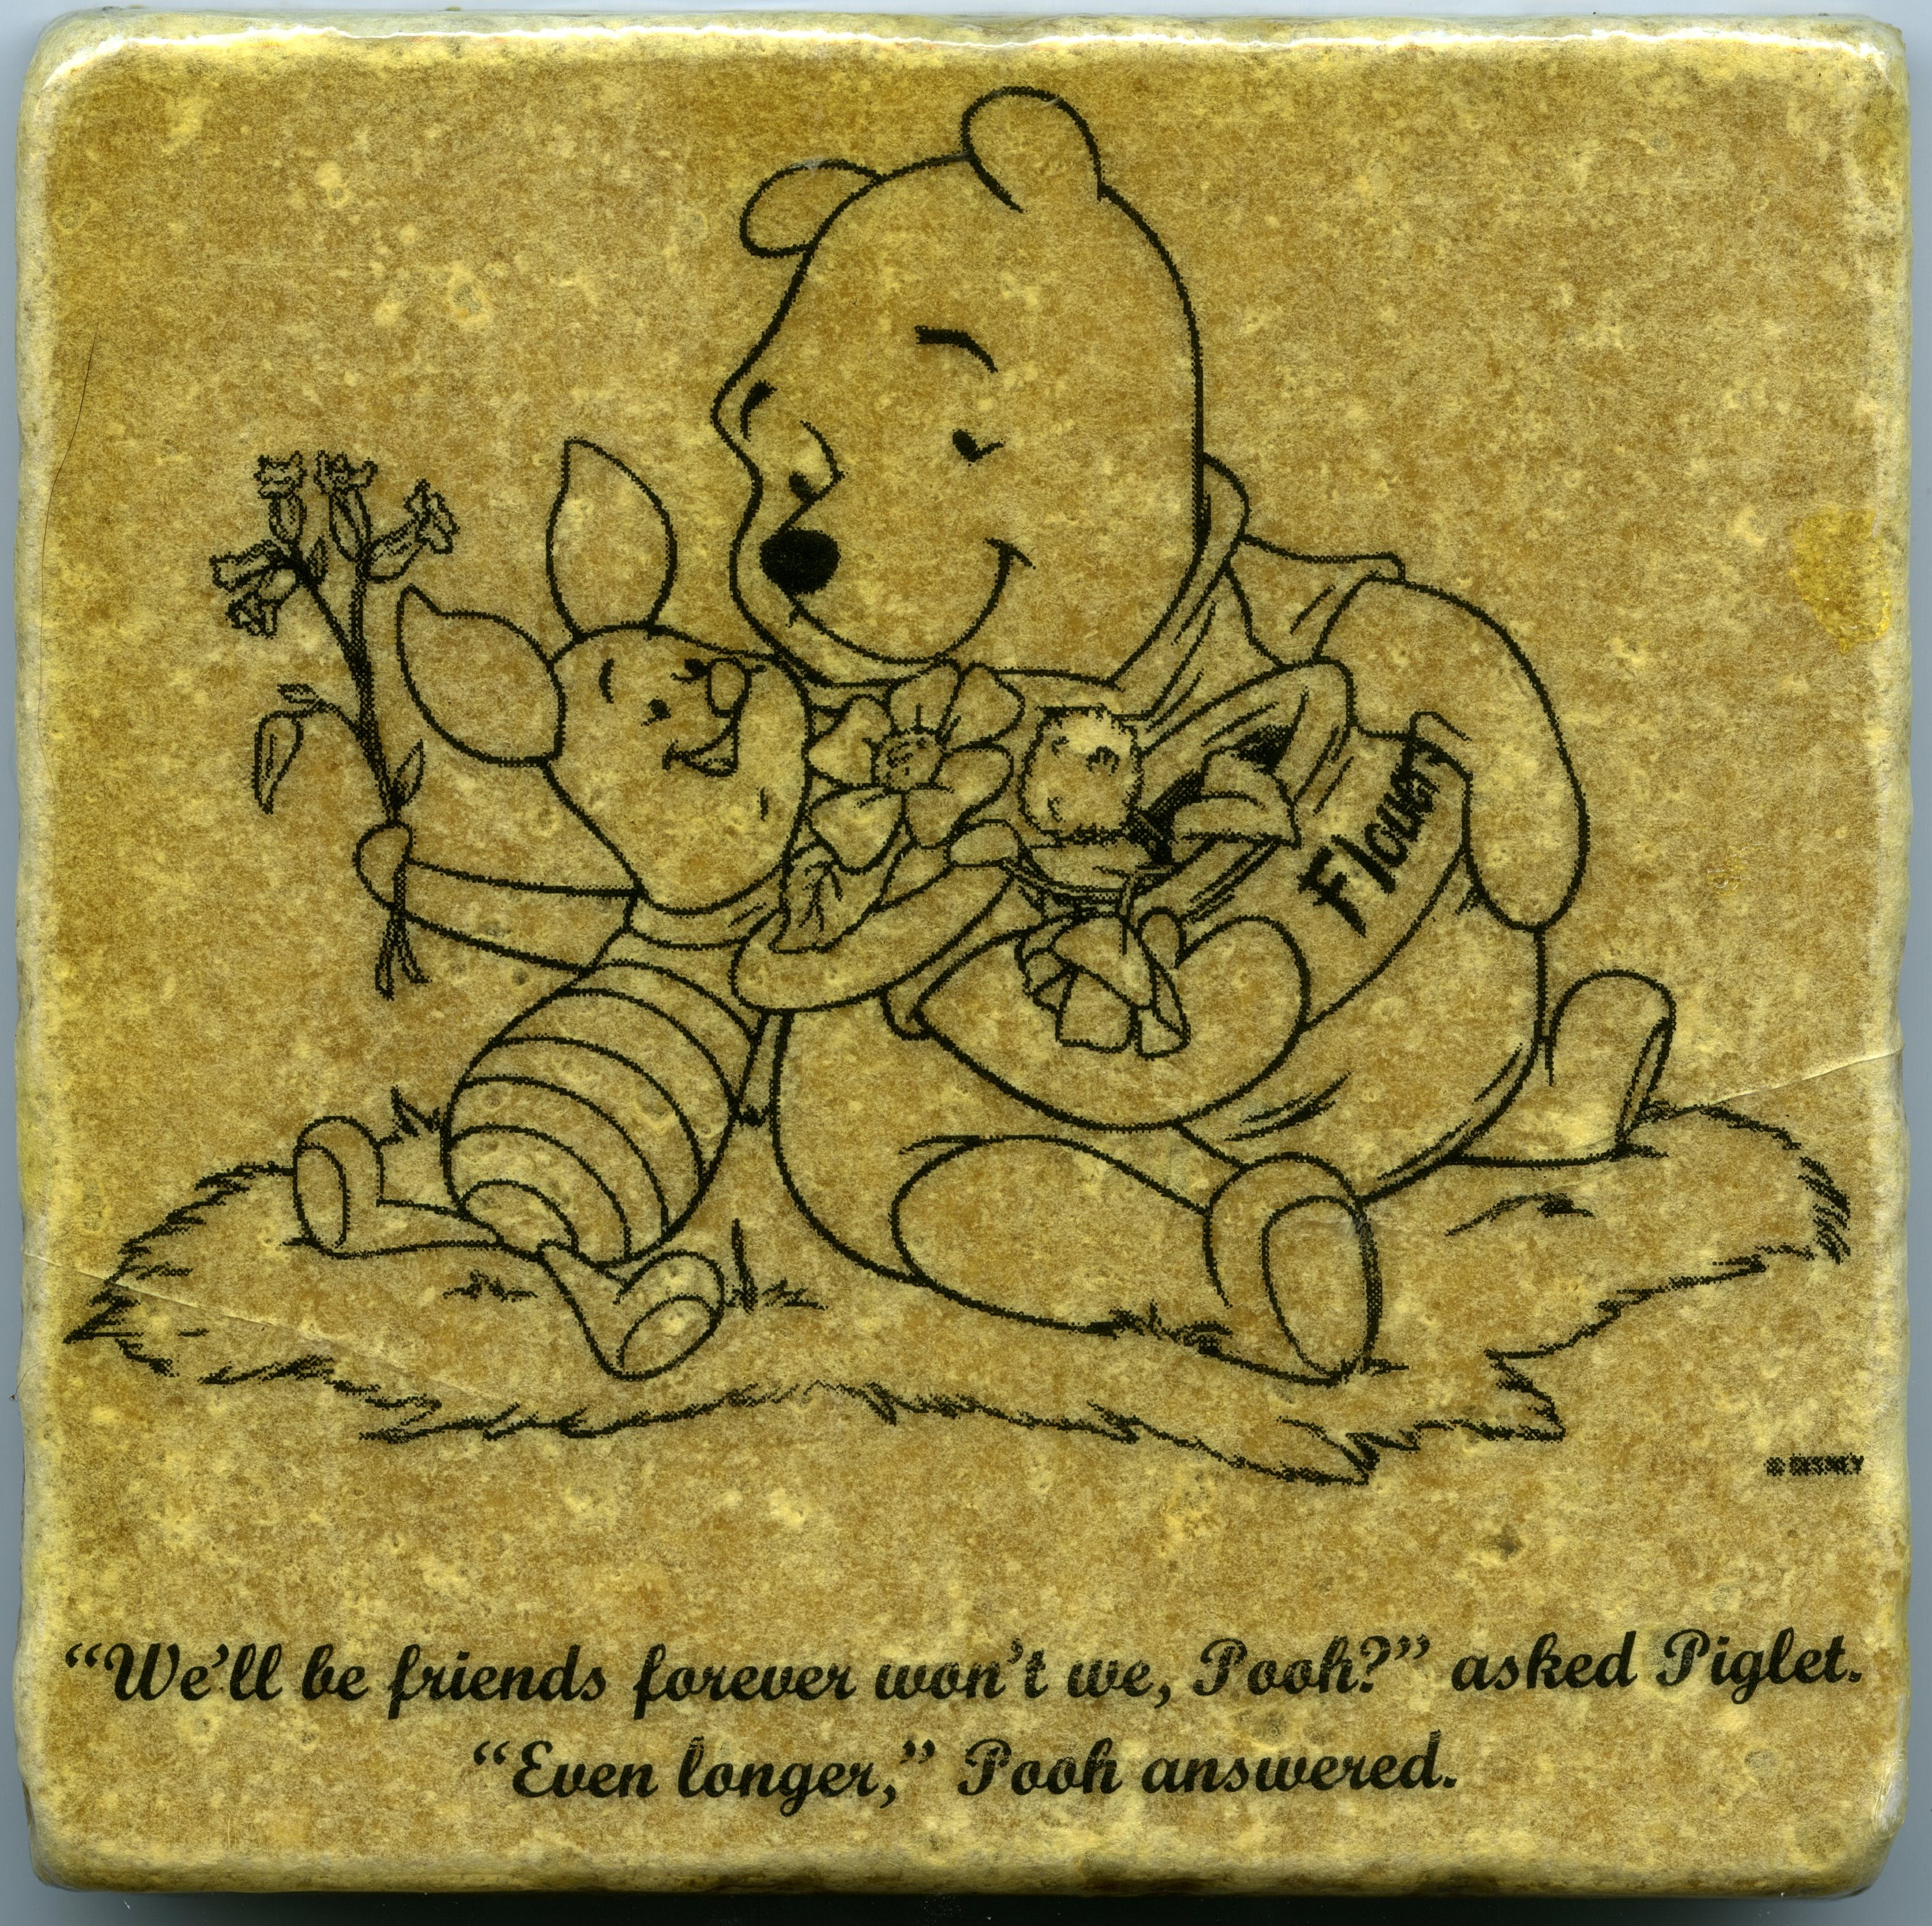 Winnie the Pooh Quote Wall Art Tumbled Tile Coaster Natural Stone ...